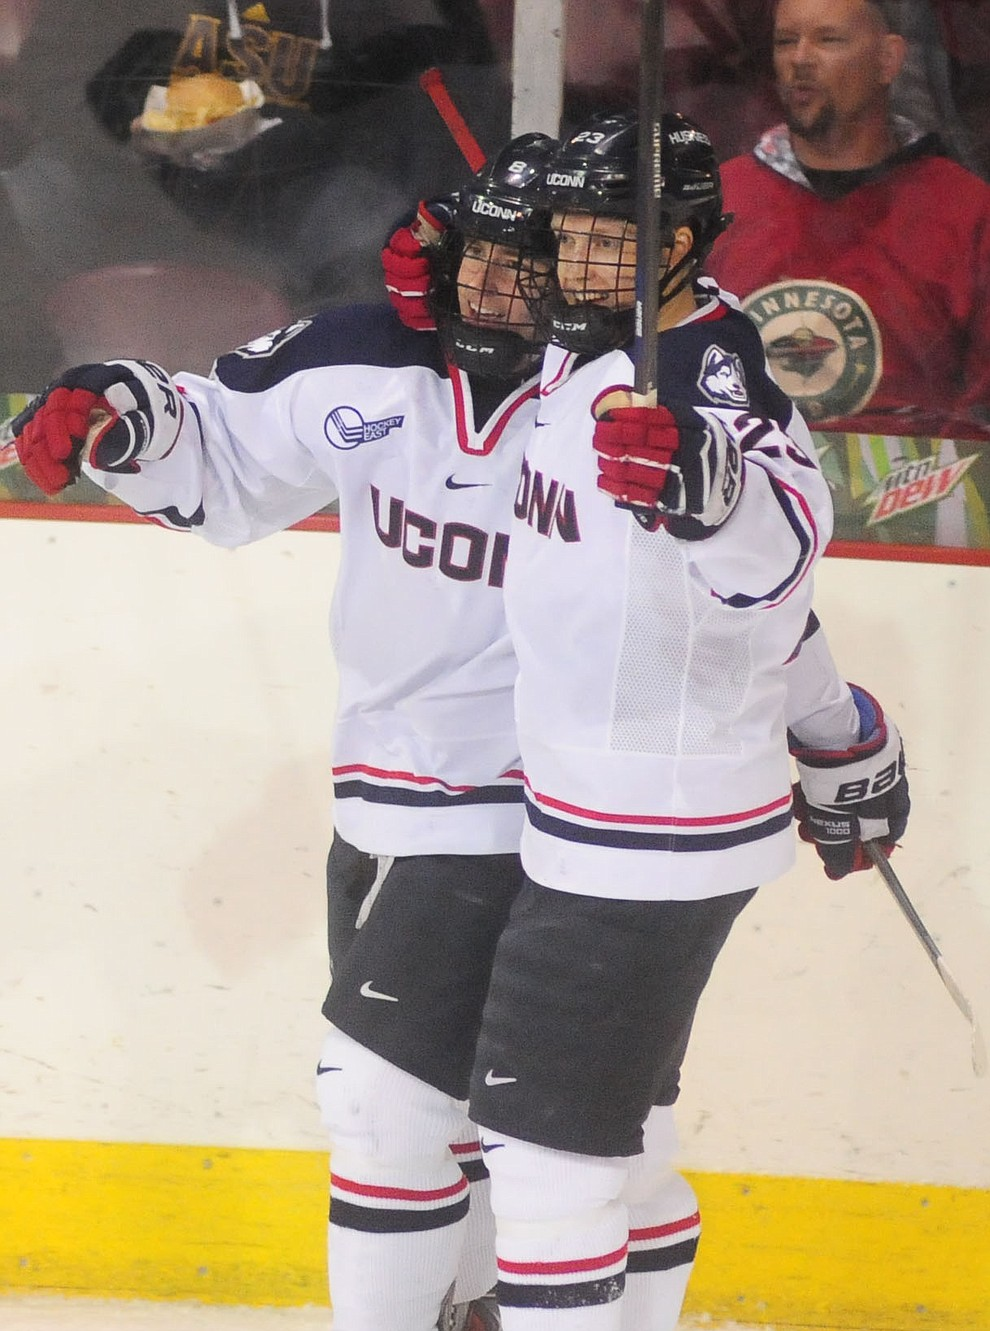 UConn's Spencer Naas and Kasperi Ojantakanen celebrate a goal as the UConn Huskies take on the St Cloud State Huskies in the Desert Hockey Classic at the Prescott Valley Event Center Friday, December 30. (Les Stukenberg/The Daily Courier)